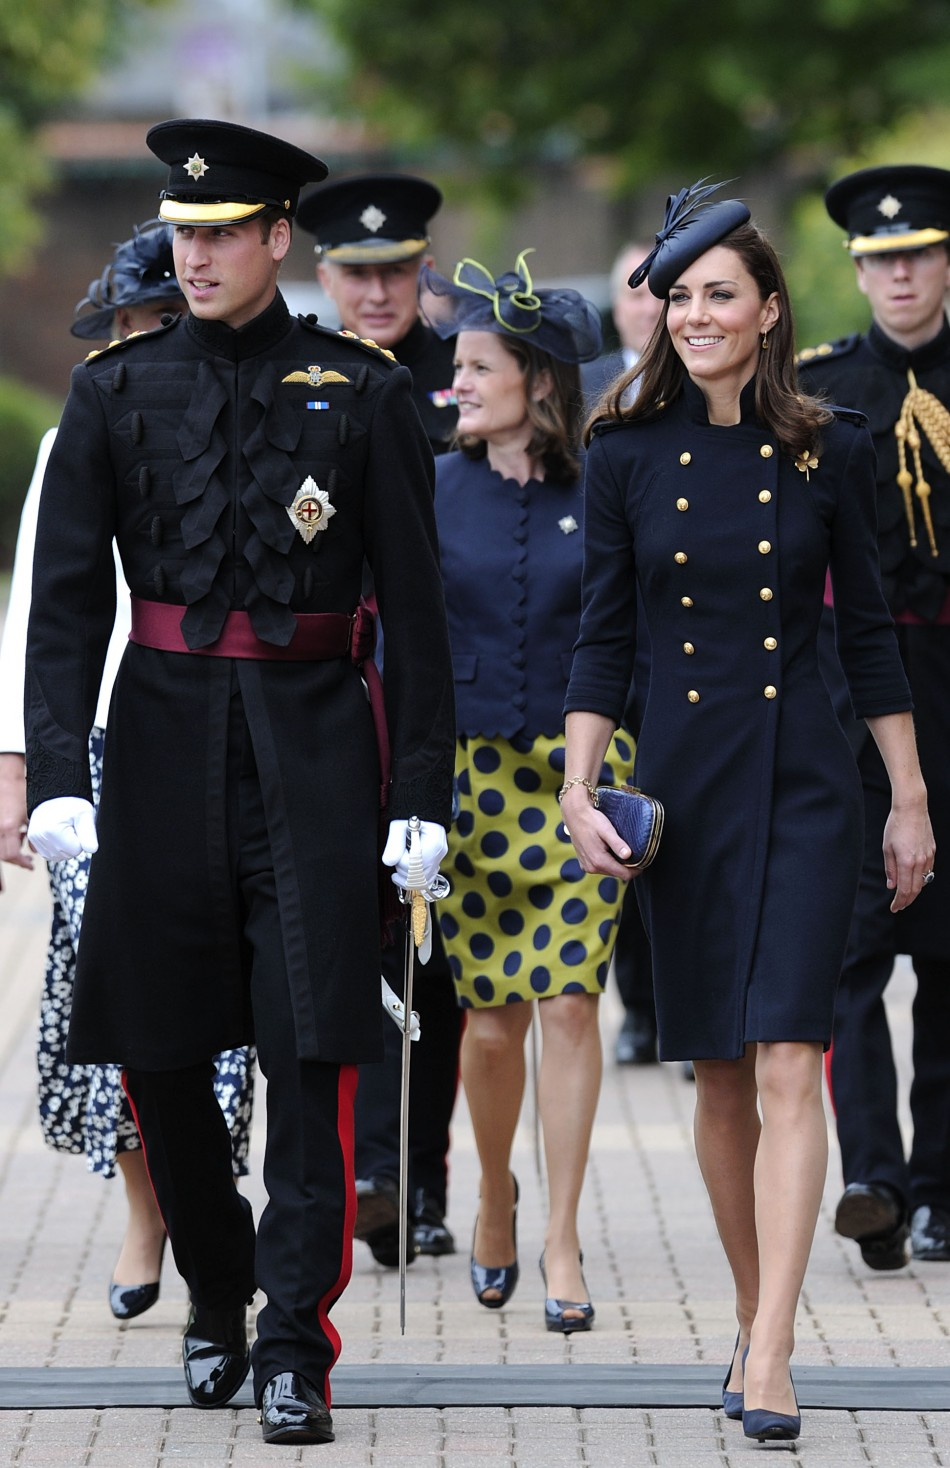 Britains Prince William and his wife Catherine, Duchess of Cambridge visit Victoria Barracks to present medals to the Irish Guards in Windsor